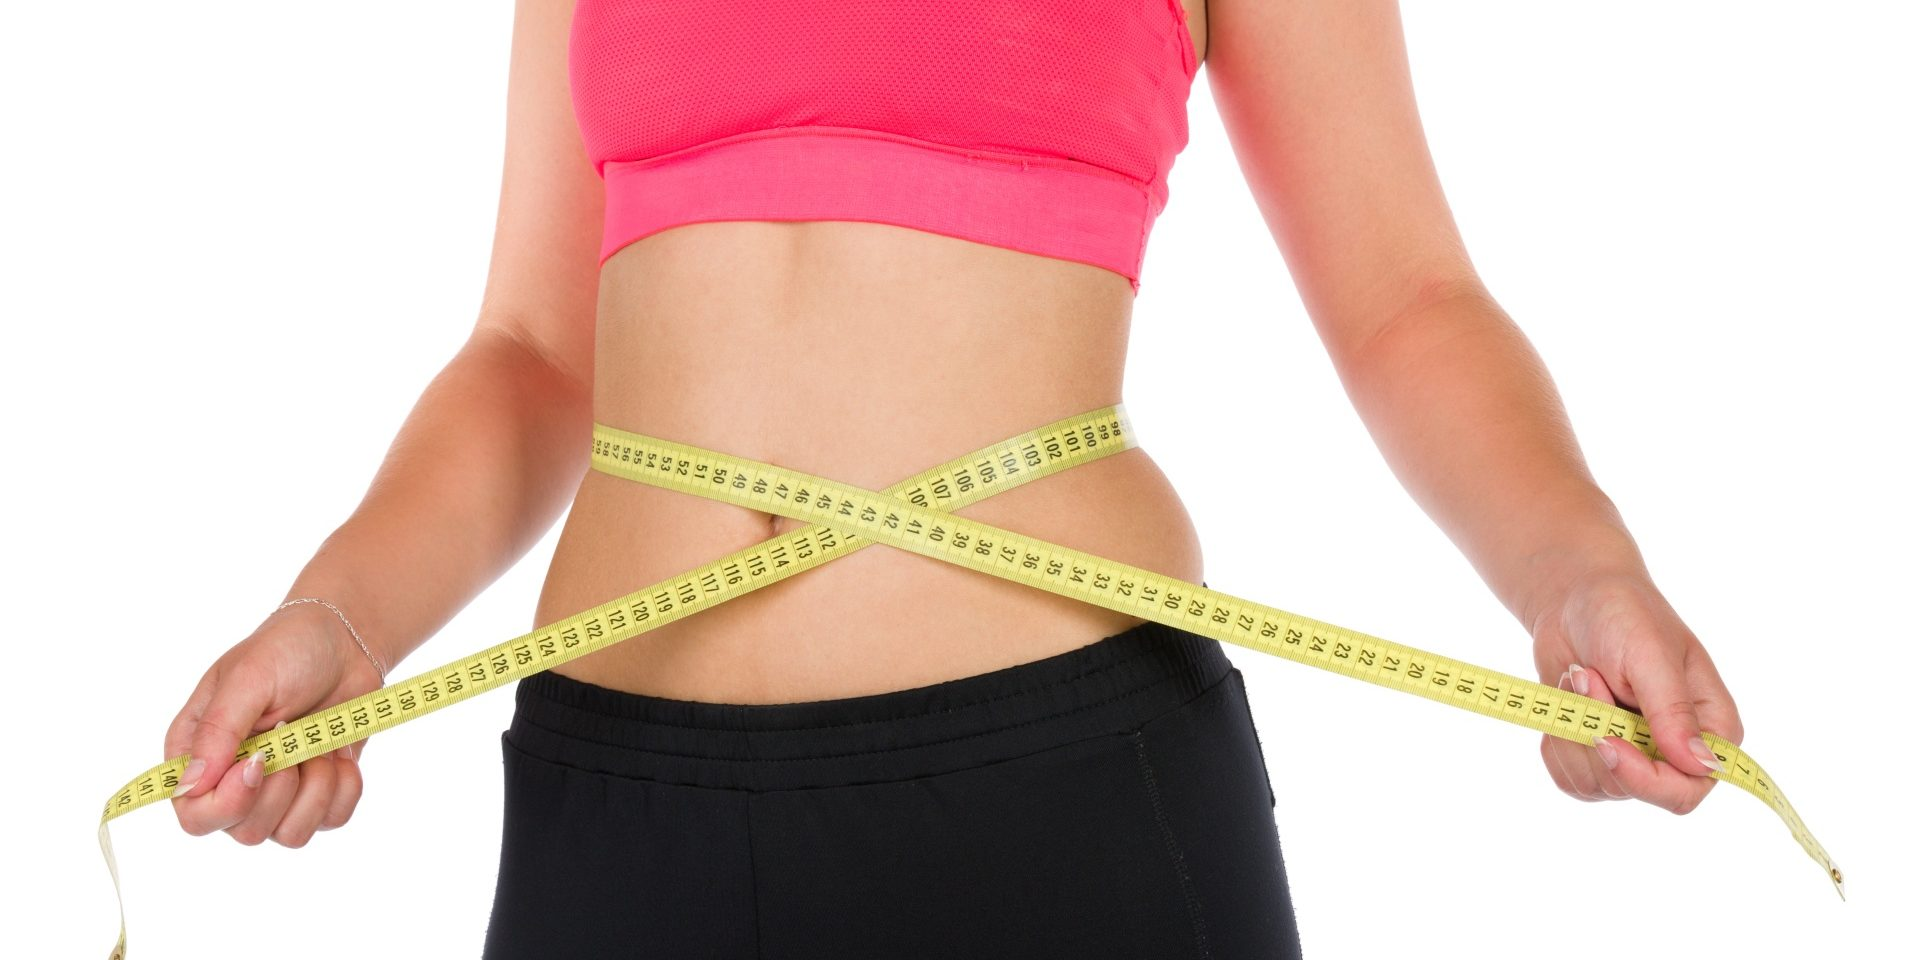 gastric bypass surgery requirements